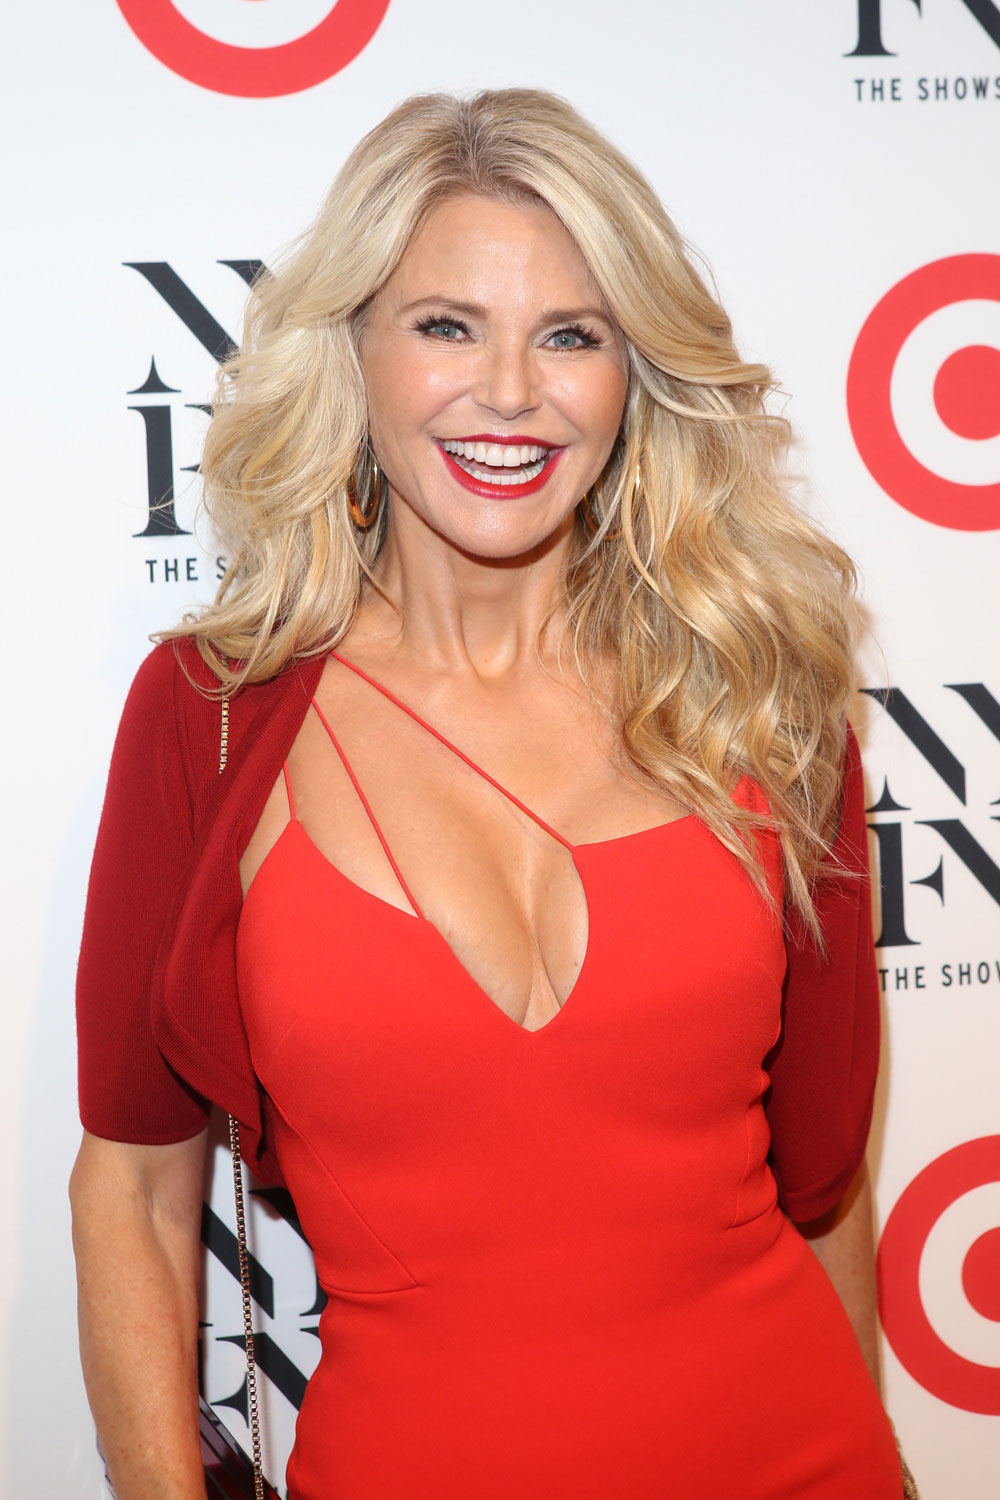 Christie Brinkley naked (78 photos), images Erotica, Snapchat, braless 2015